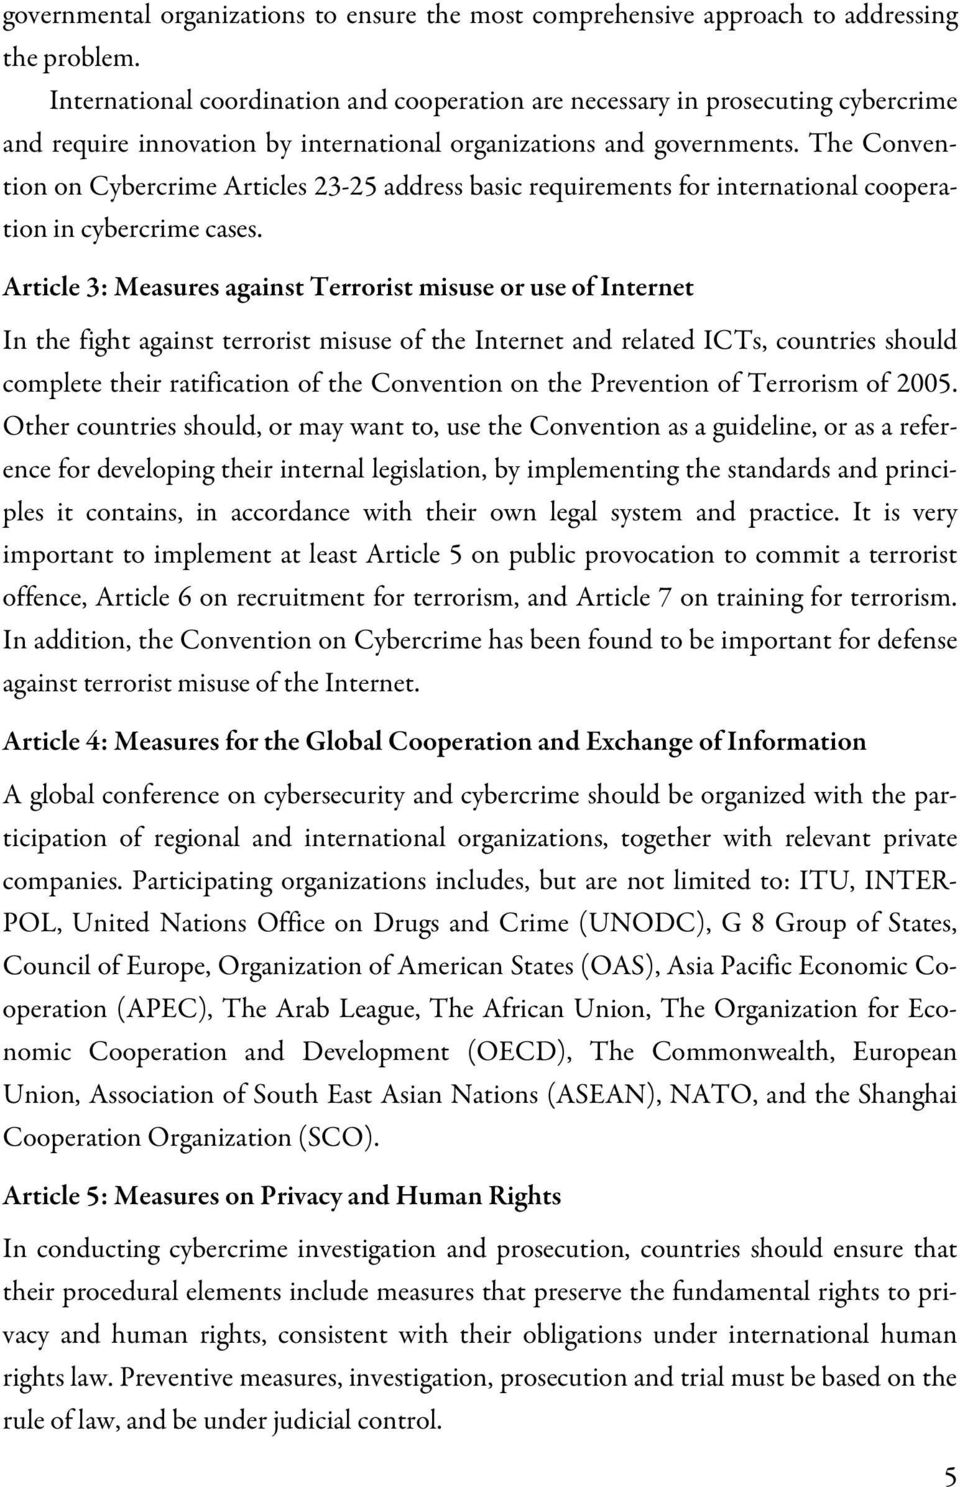 The Convention on Cybercrime Articles 23-25 address basic requirements for international cooperation in cybercrime cases.